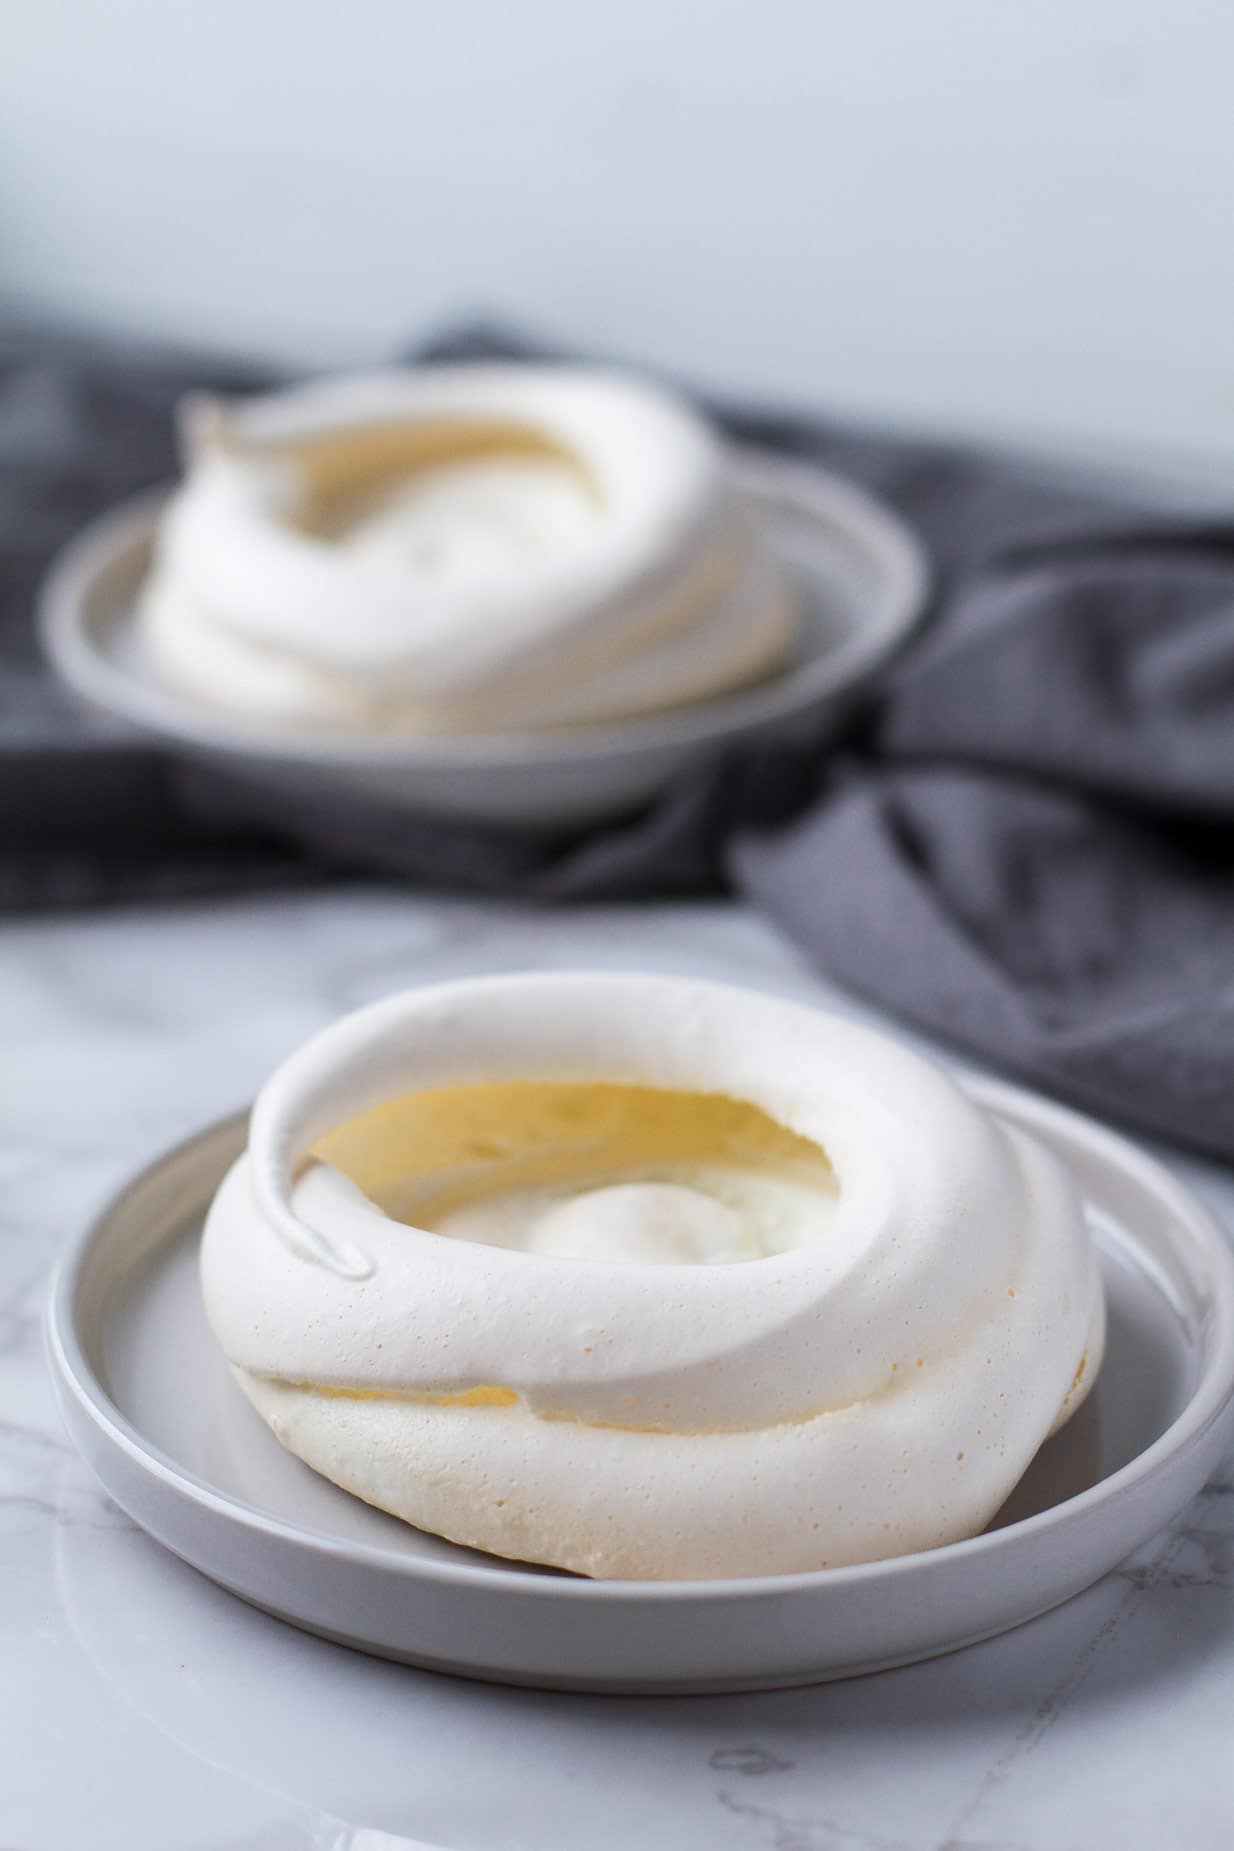 Unfilled pavlova nests on grey plates.